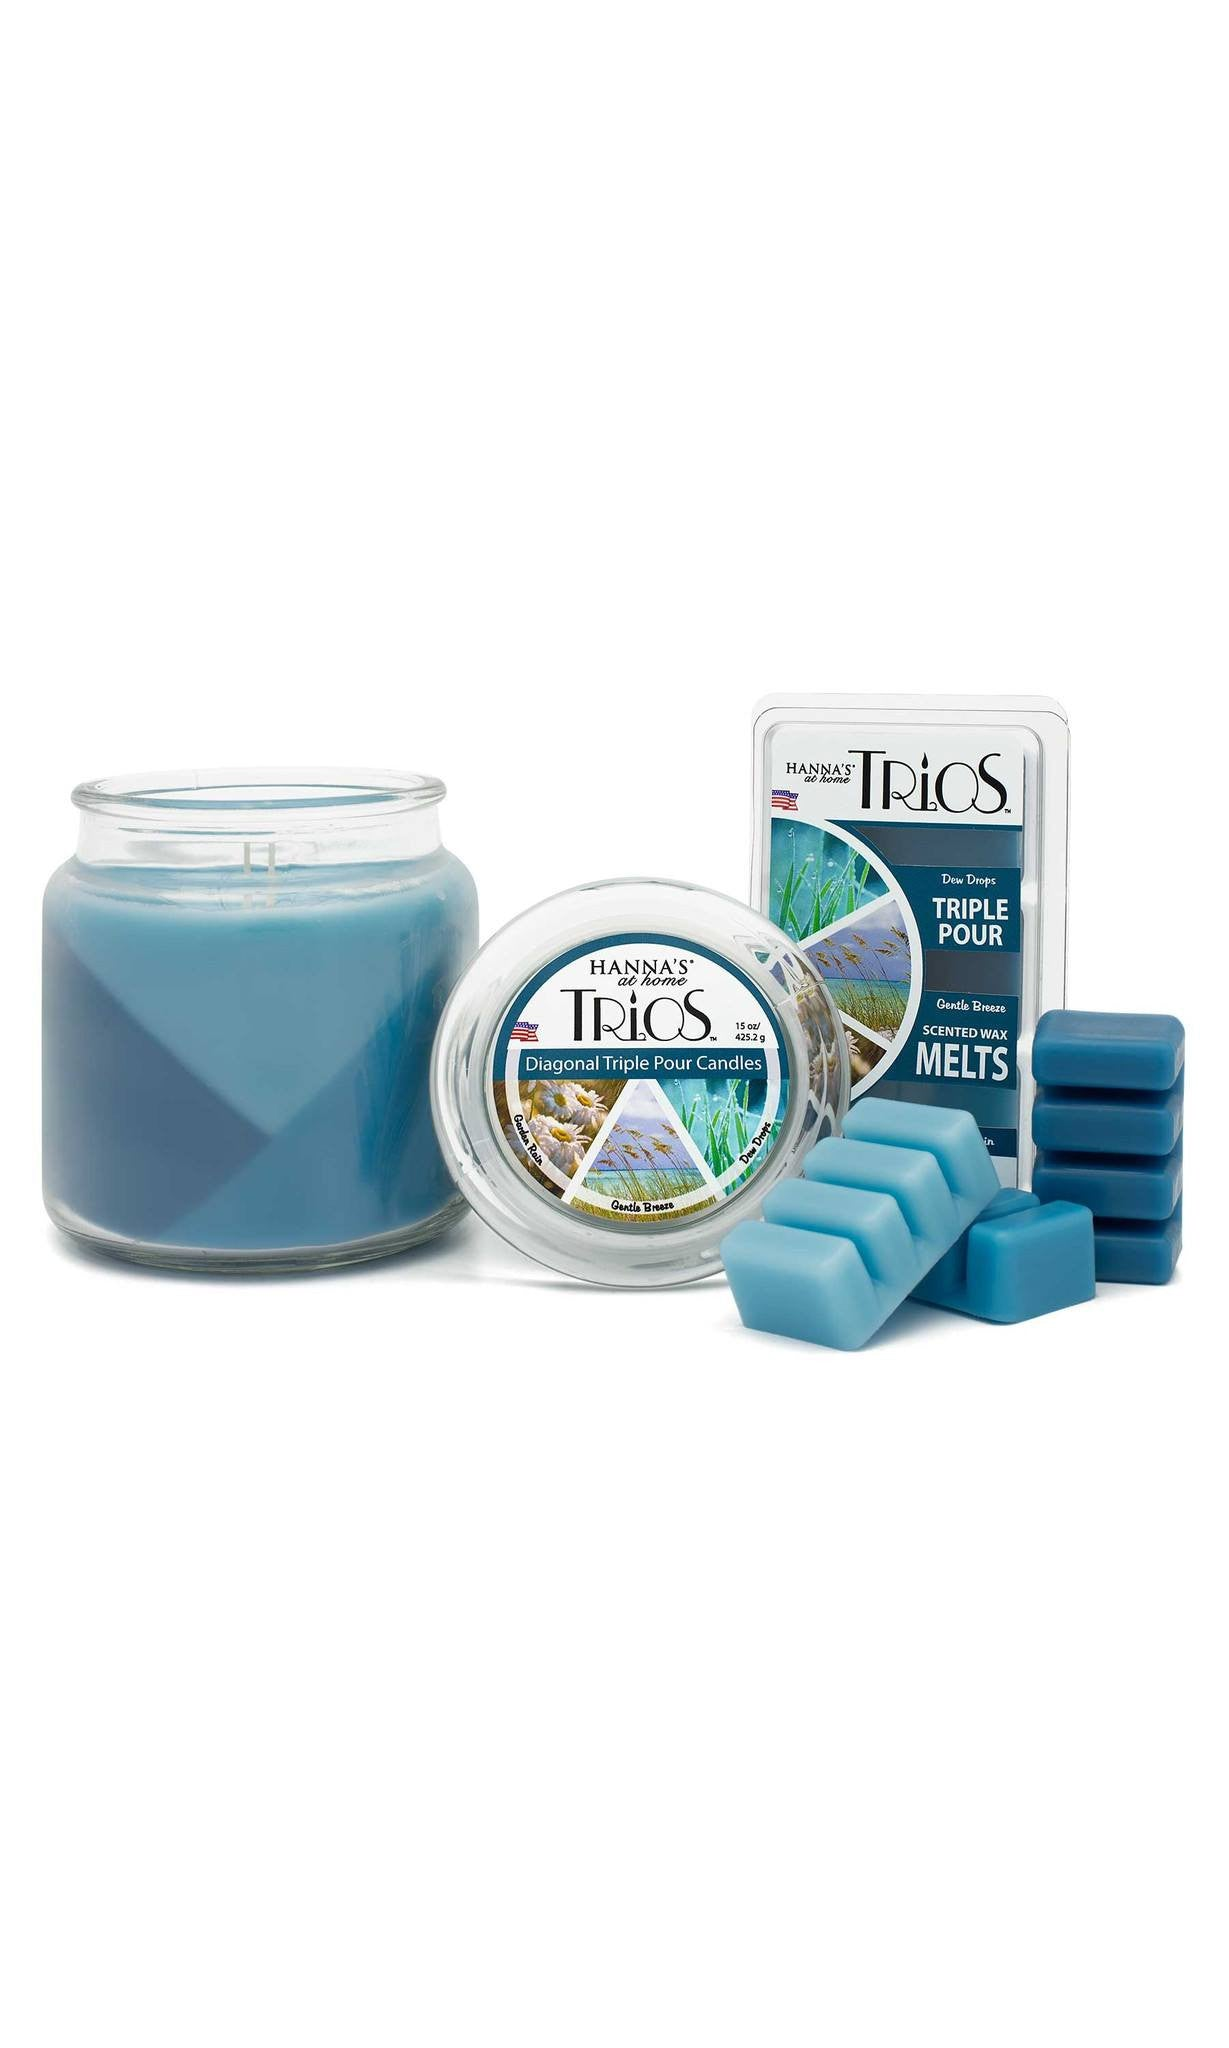 Trios Triple Pour Garden Rain Scented Candle - Candlemart.com